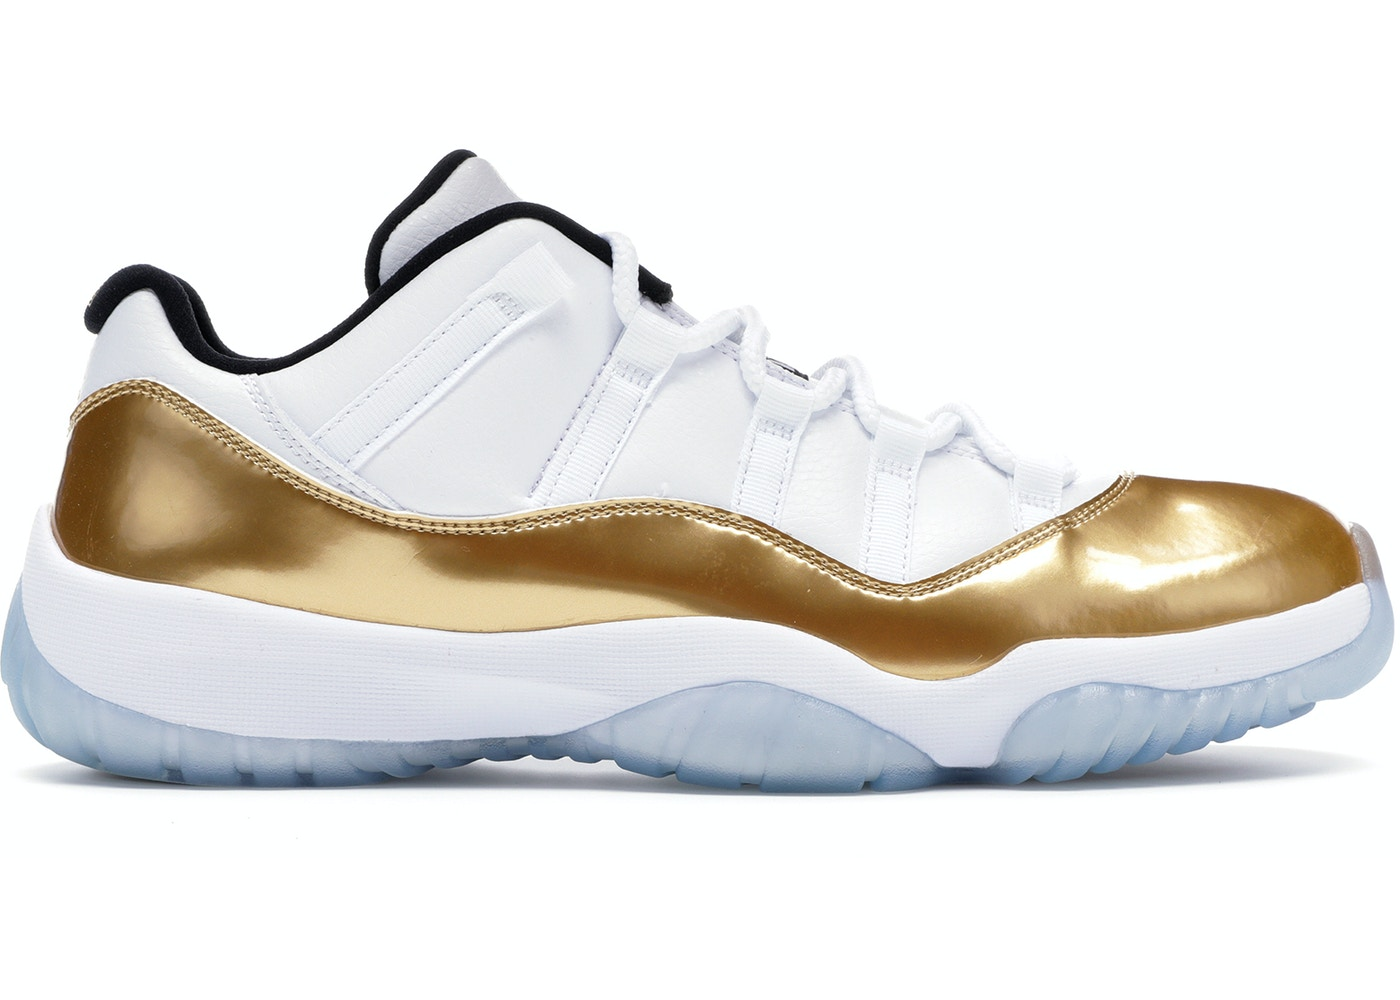 21a15a49240 Jordan 11 Retro Low Closing Ceremony - 528895-103